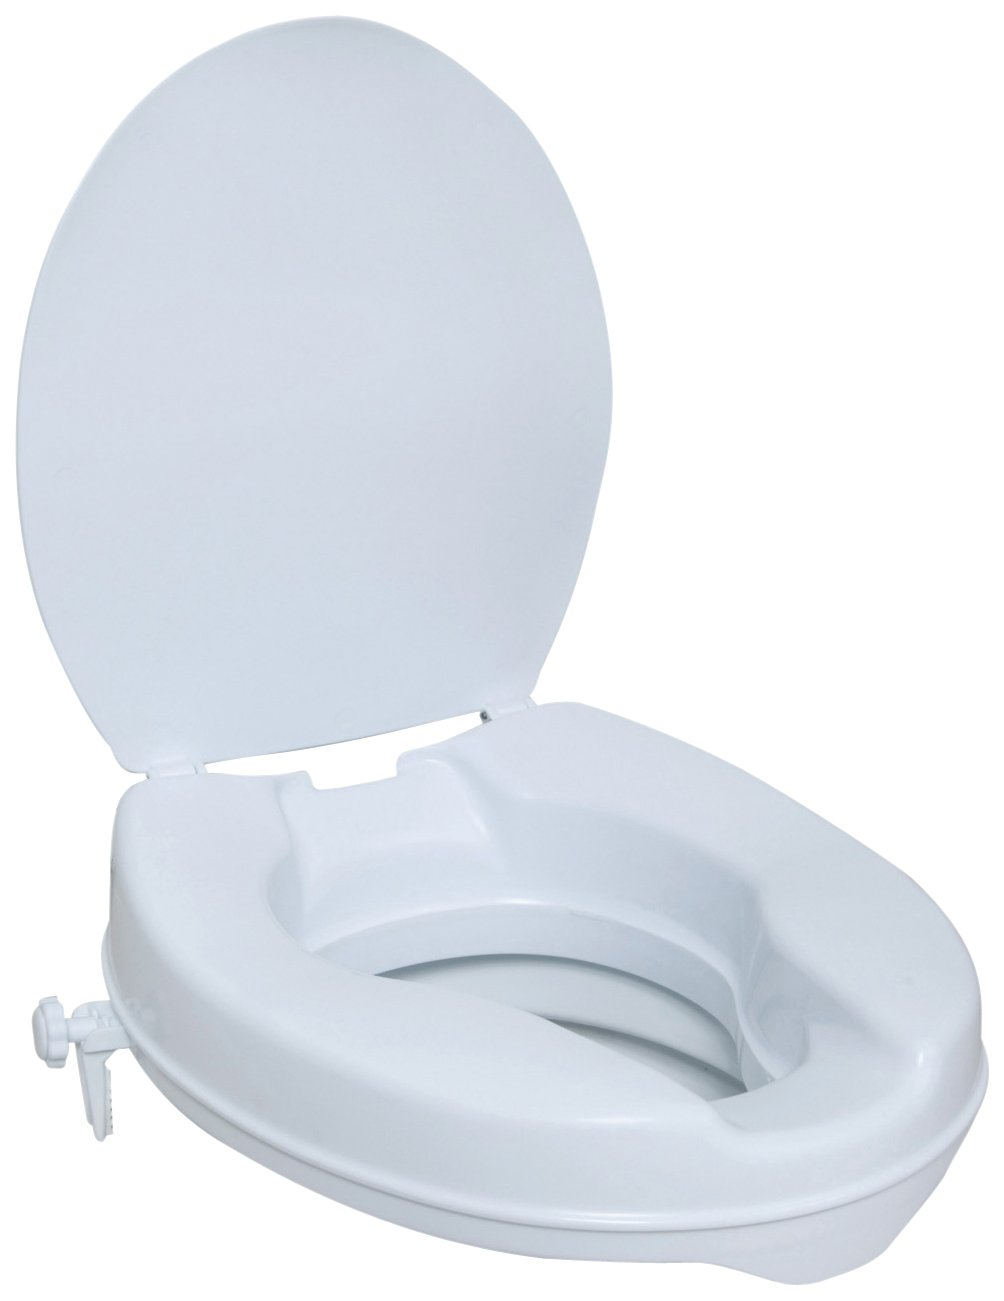 Raised Toilet Seat For Elderly Australia Toilet Riser With Handles High Toil